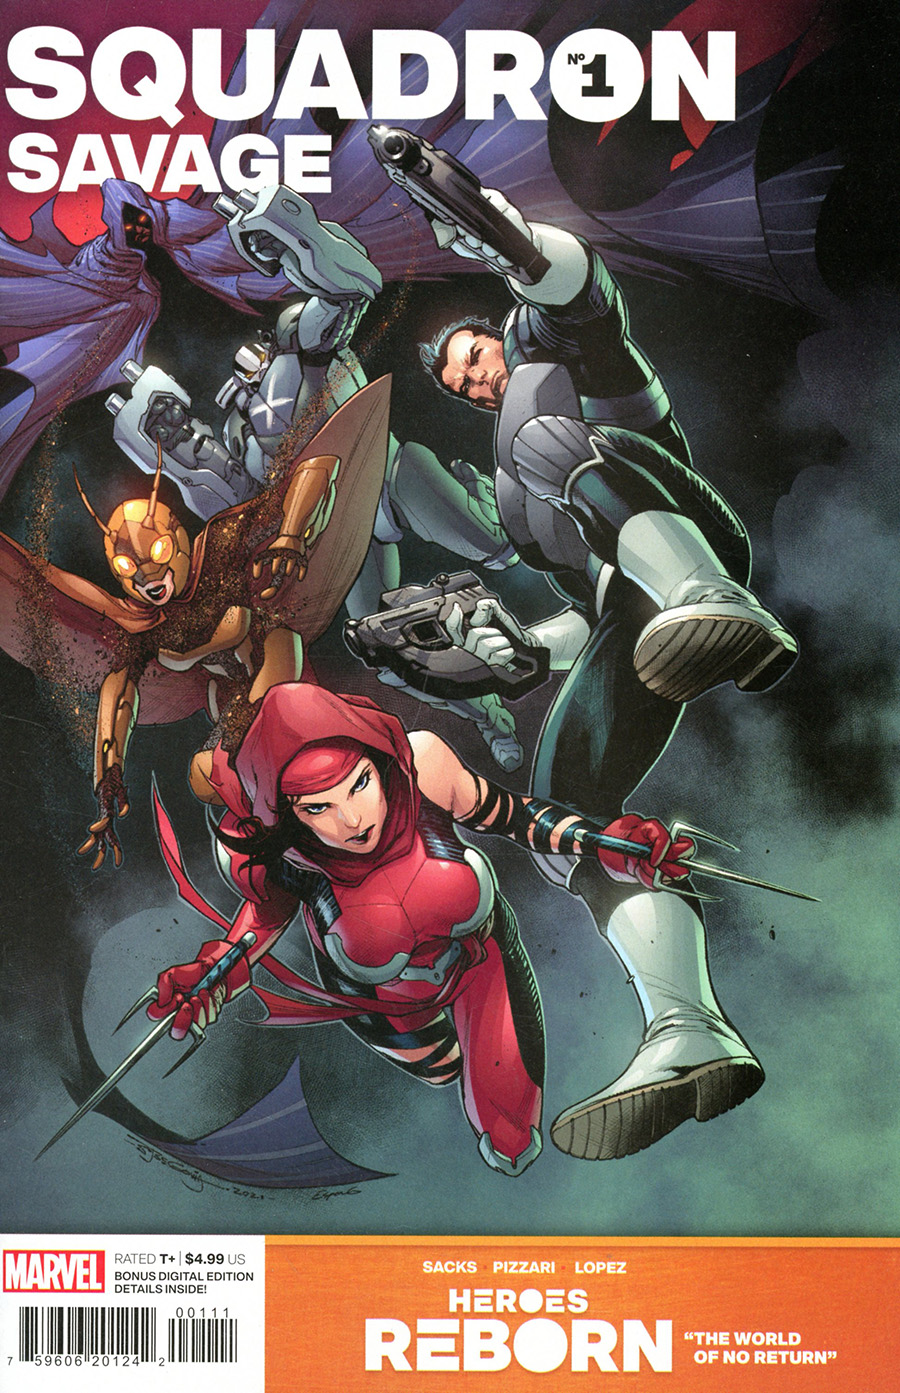 Heroes Reborn Squadron Savage #1 (One Shot) Cover A Regular Stephen Segovia Cover